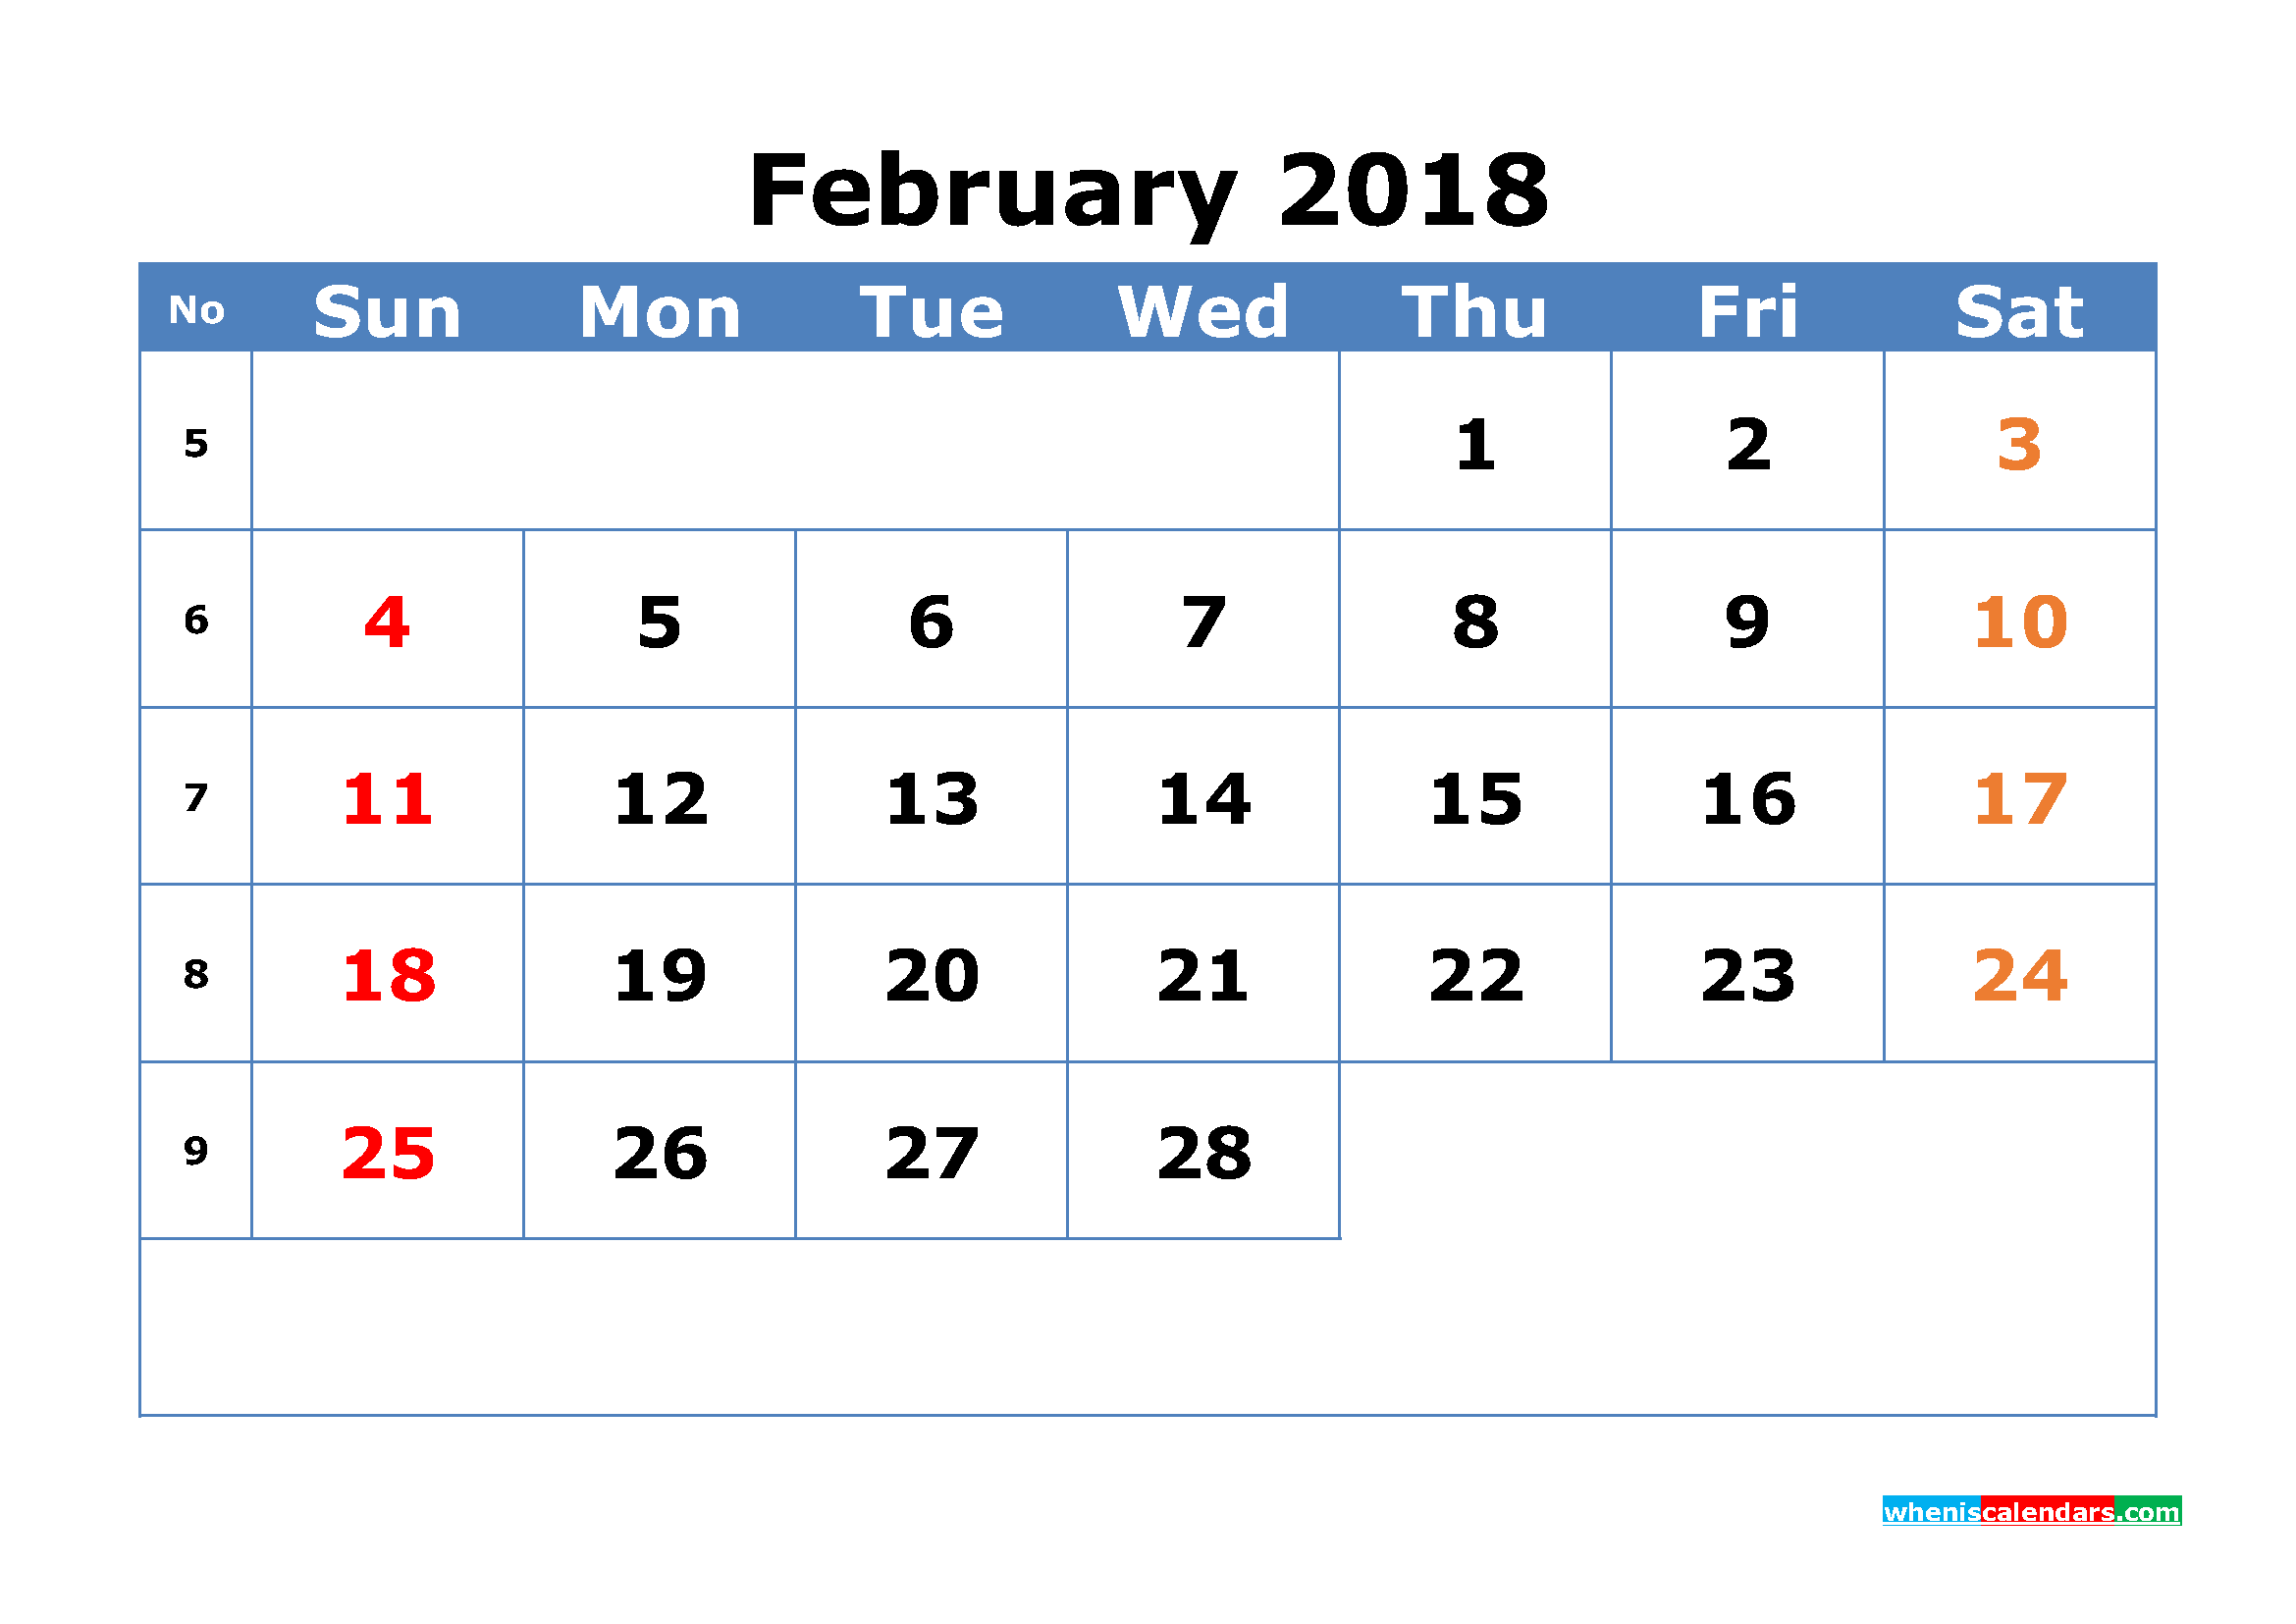 Printable Calendar February 2018 with Week Numbers Pdf, Image